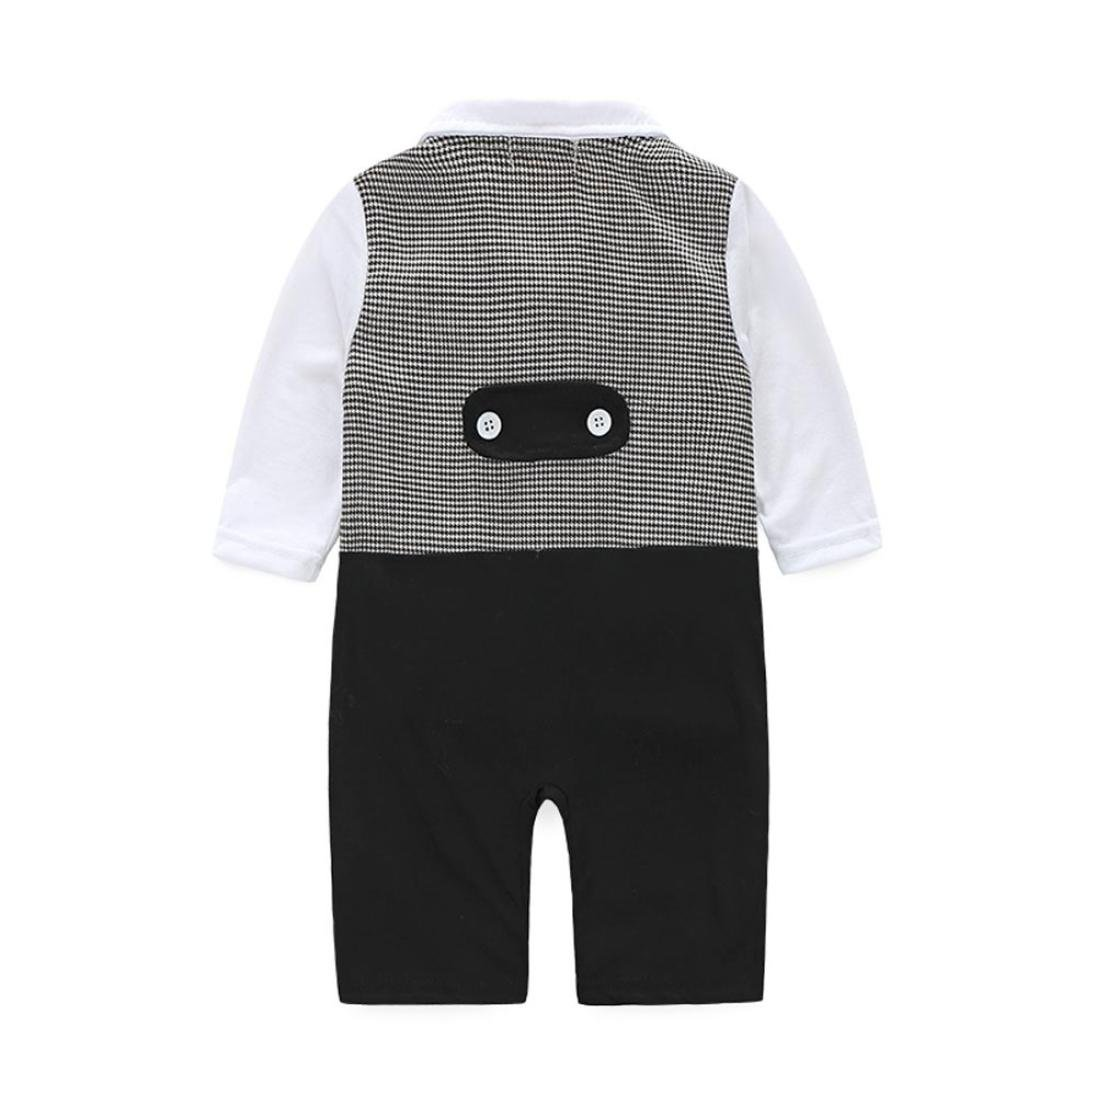 6 Months FEITONG Baby Boys Formal Party Christening Wedding Tuxedo Waistcoat Bow Tie Suit